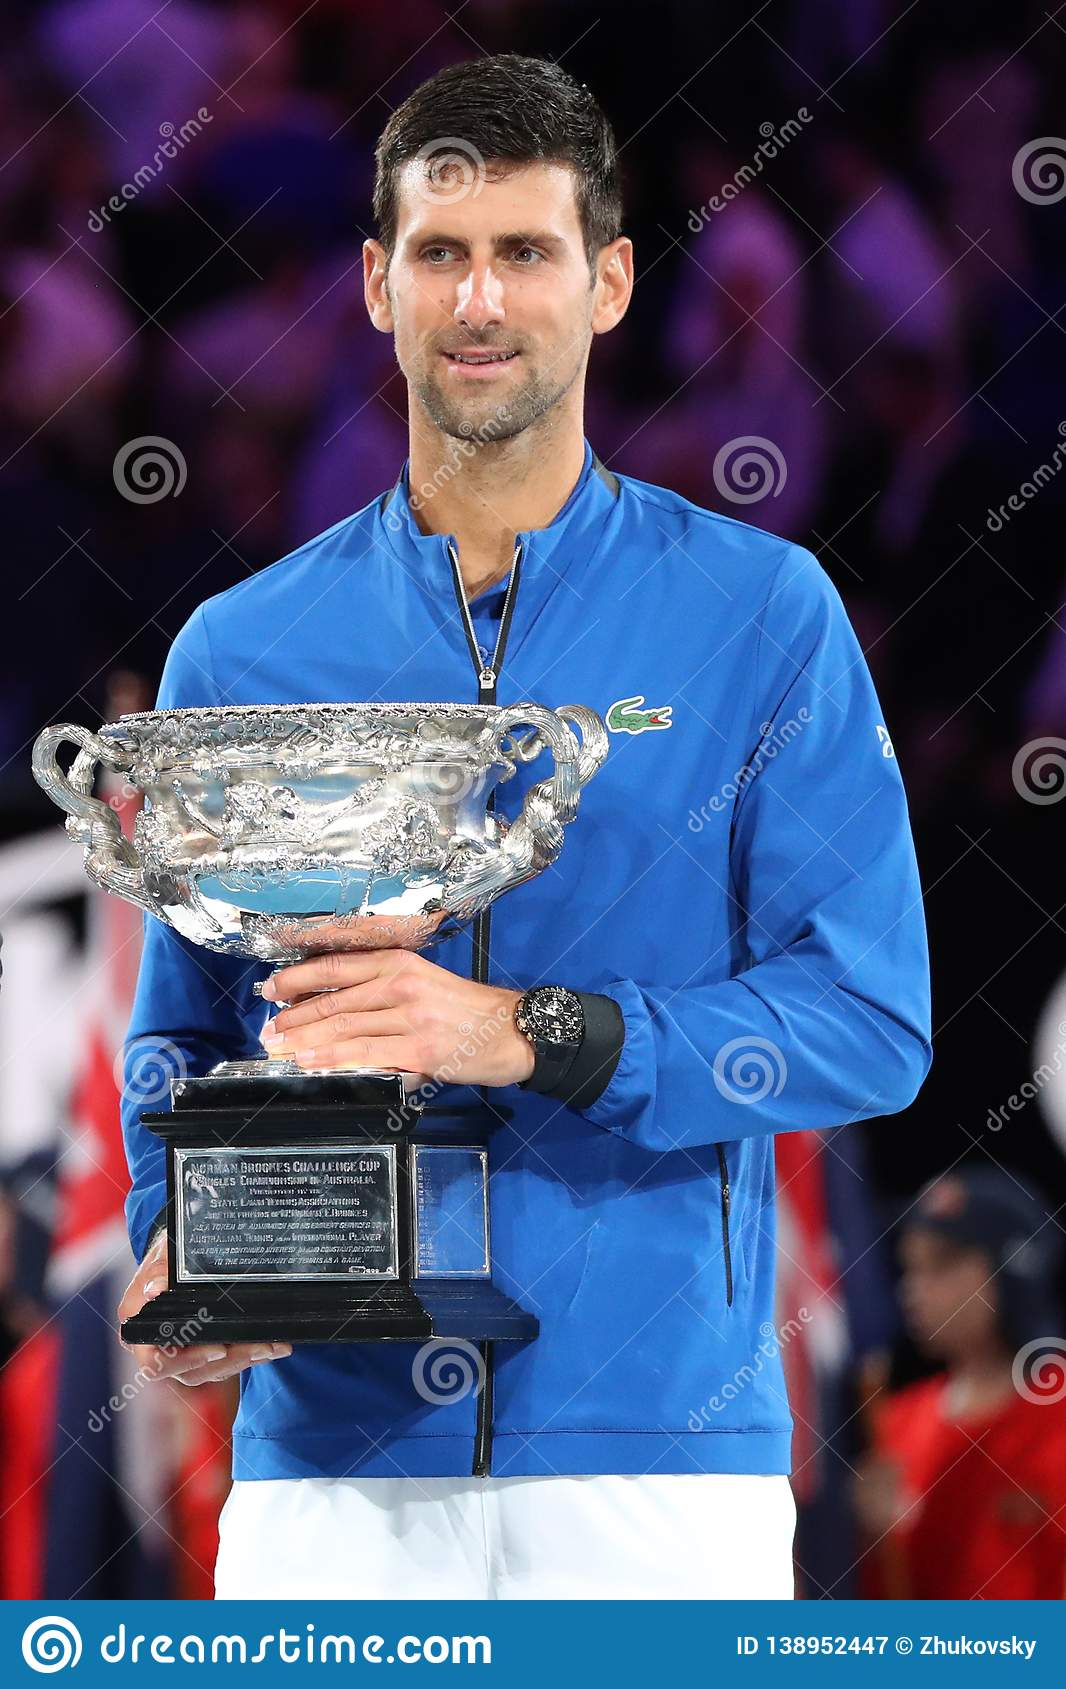 2019 Australian Open Champion Novak Djokovic Of Serbia During Trophy Presentation After Men S Final Match At Rod Laver Arena Editorial Photography Image Of January Champion 138952447